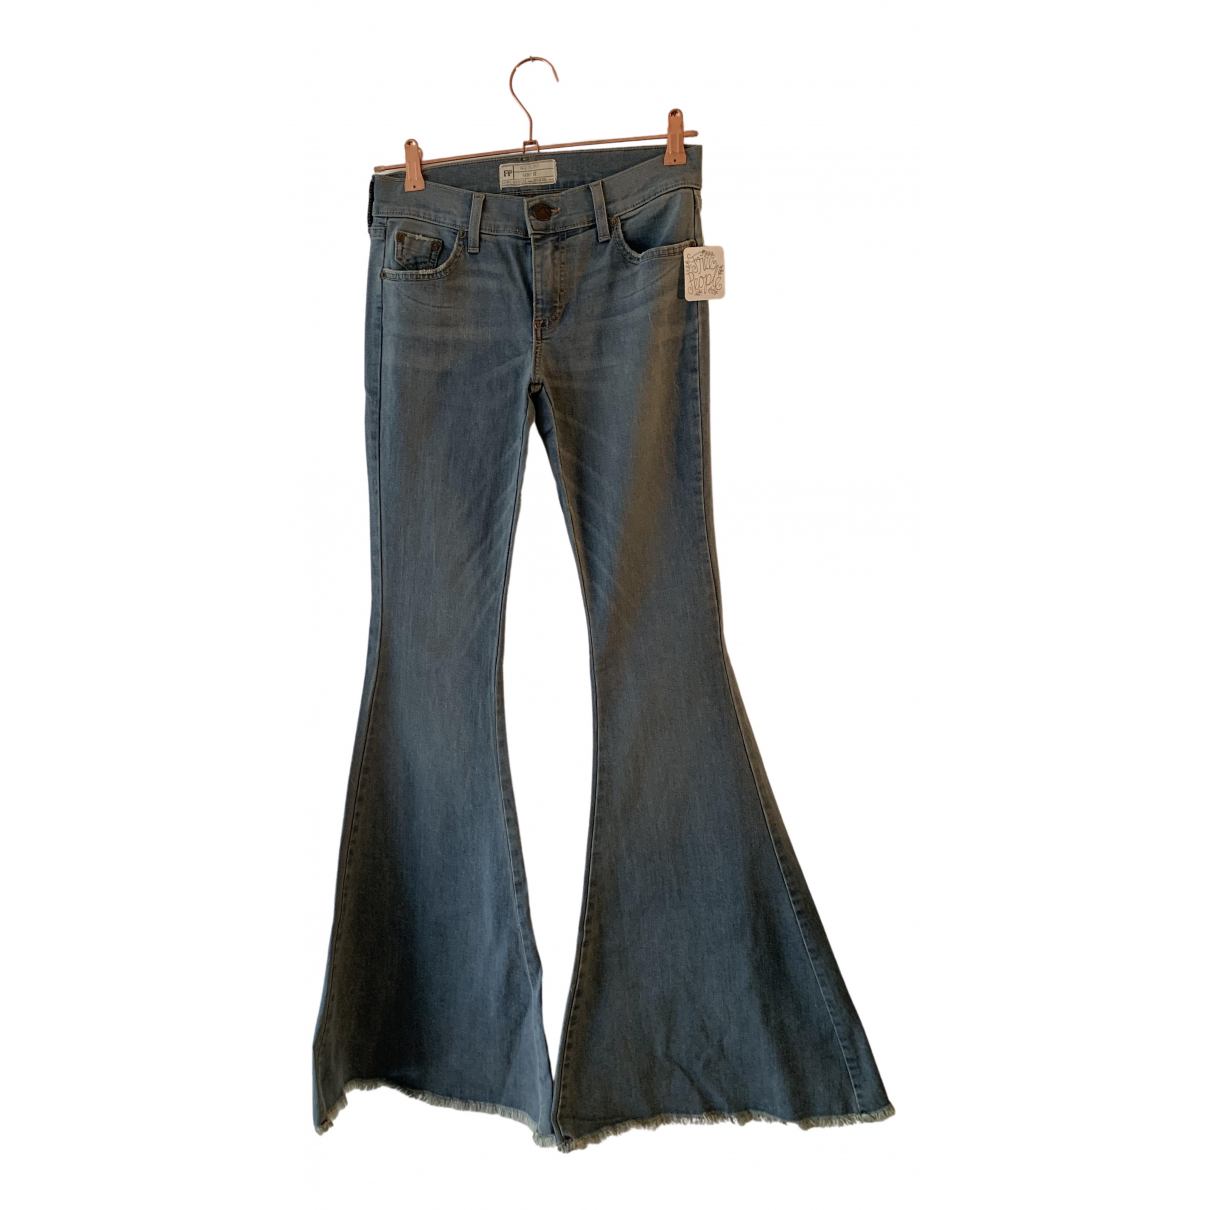 Free People N Blue Cotton - elasthane Jeans for Women 27 US